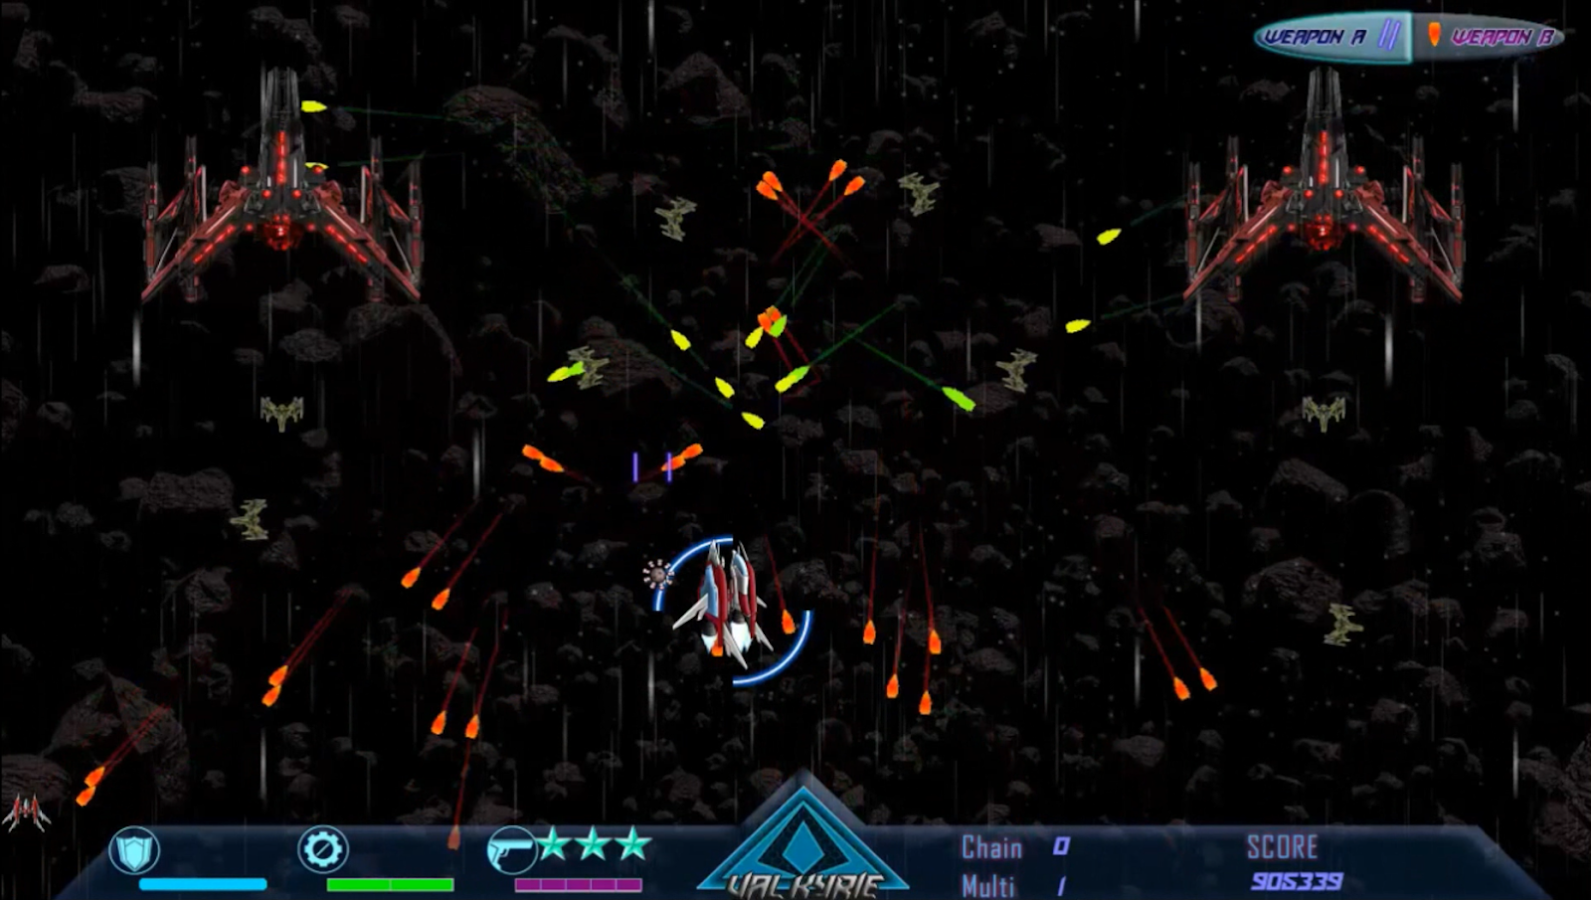 Beyond Black Space: Valkyrie Screenshot 4